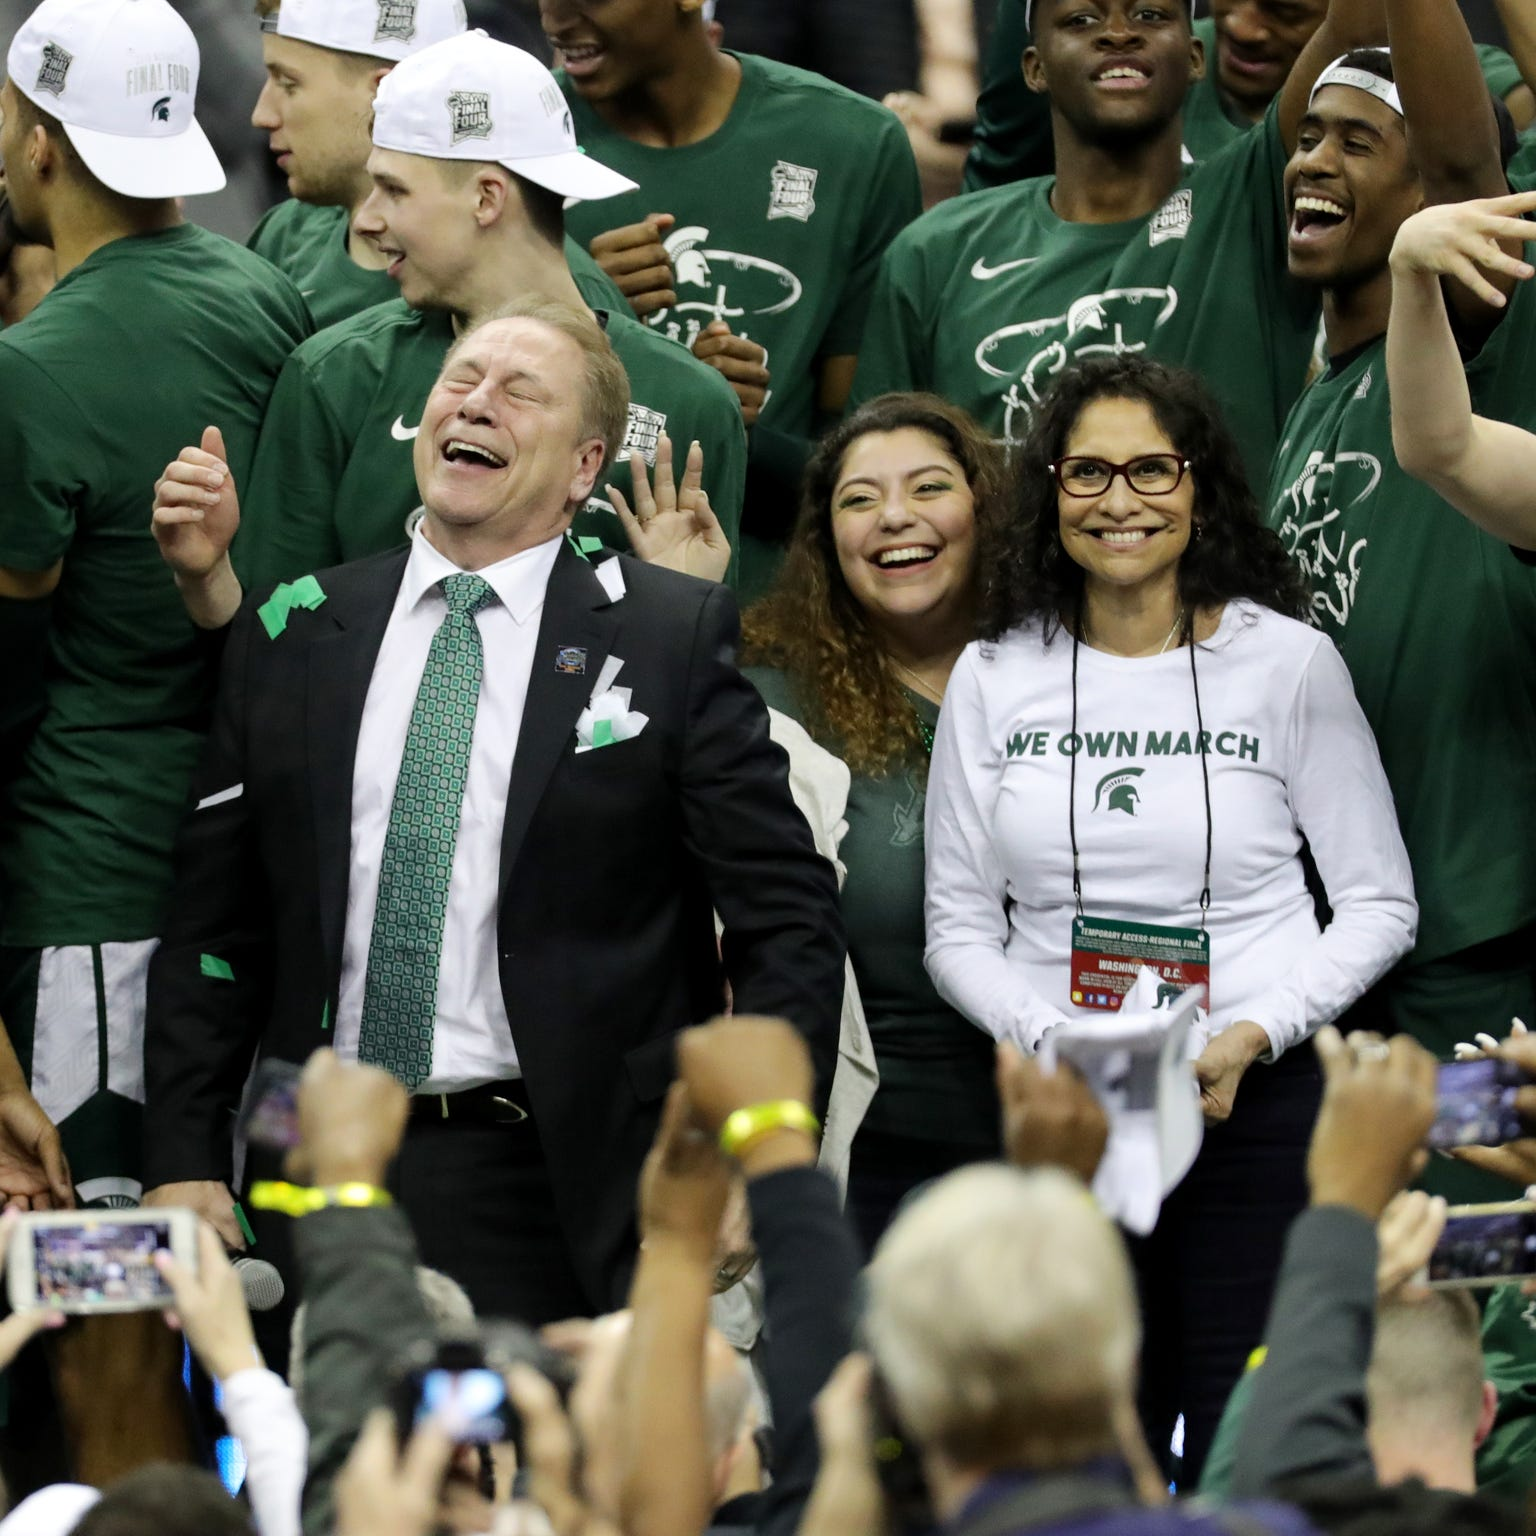 Michigan State the Final Four blueblood, with 'idol' Tom Izzo chasing 2nd title